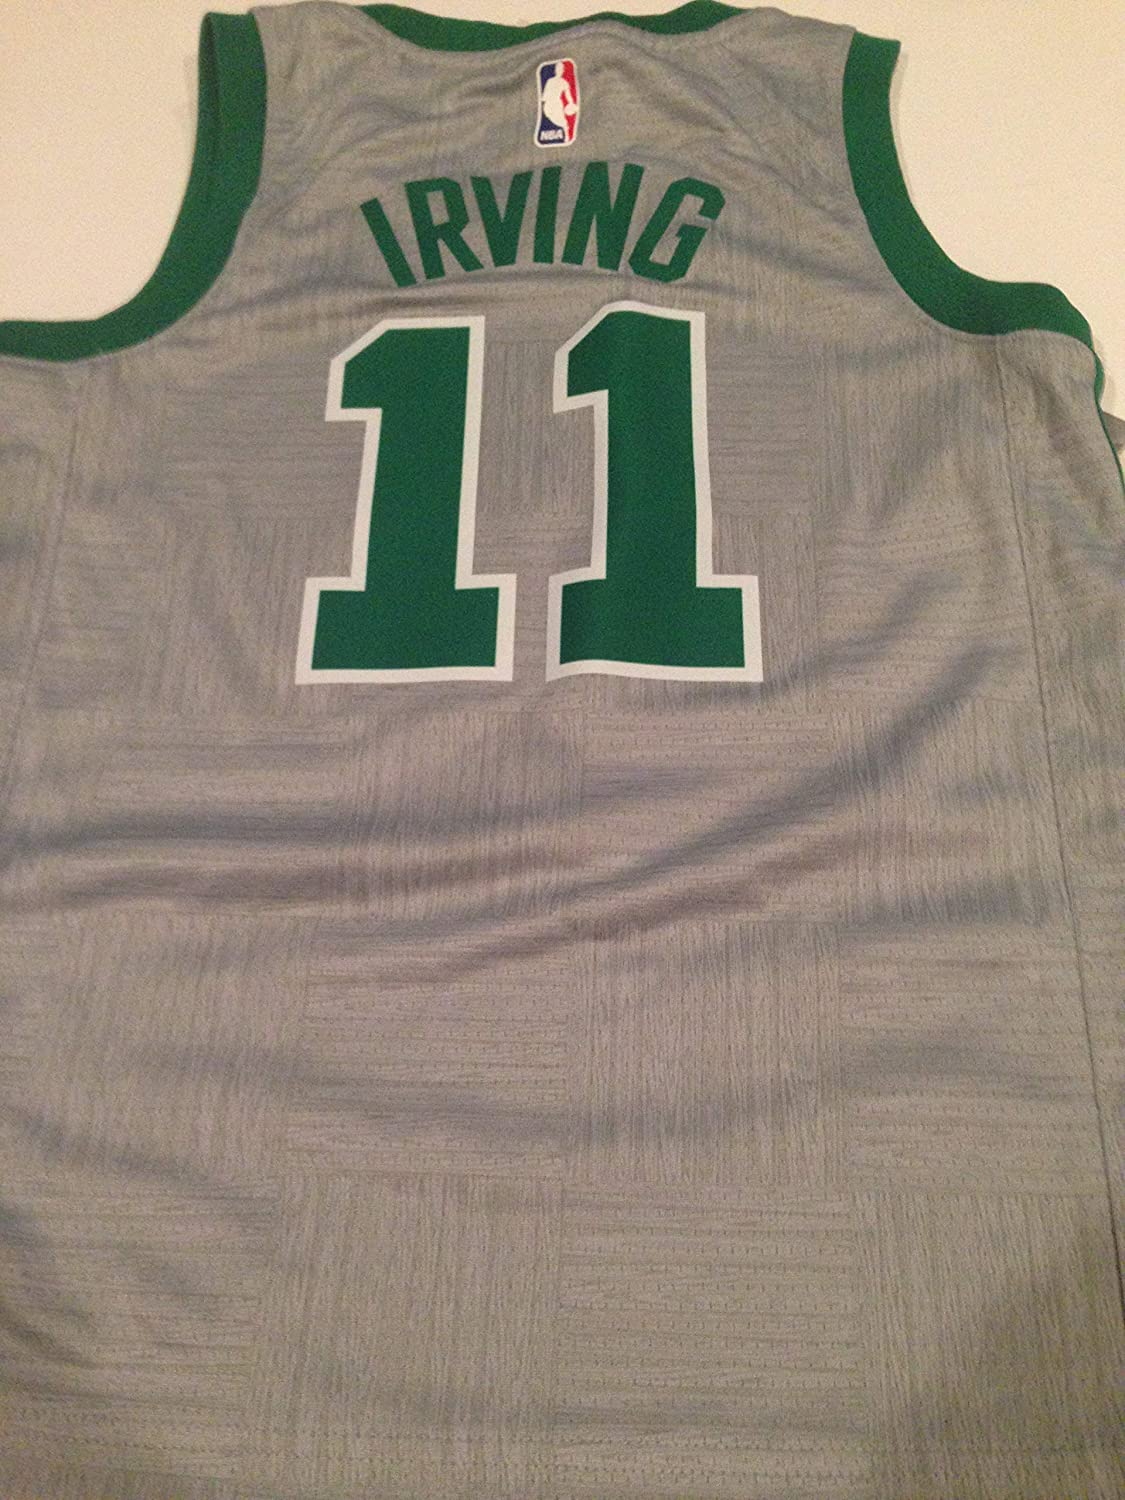 promo code 0cec7 db2a5 Amazon.com : Nike Kyrie Irving Celtics Jersey. Youth Small ...